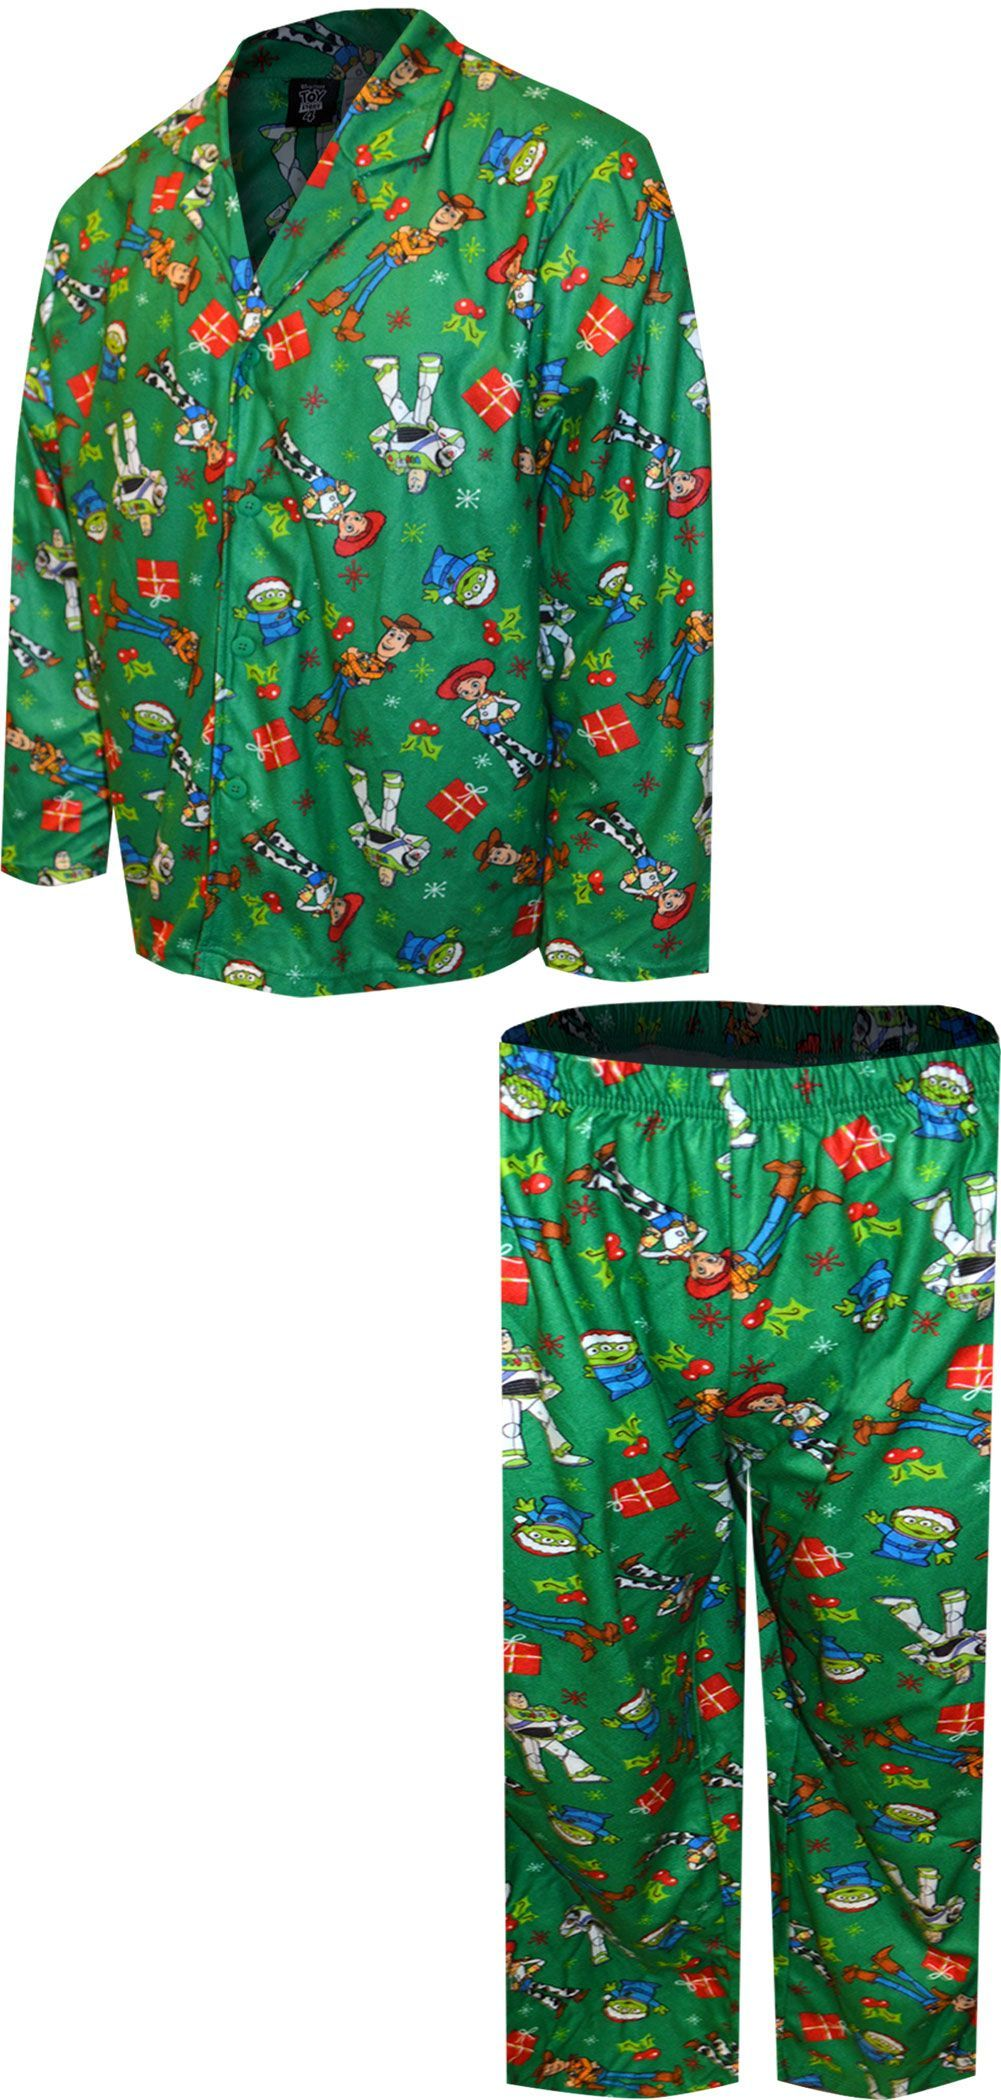 Merry Christmas! These pajamas for men from the new Toy